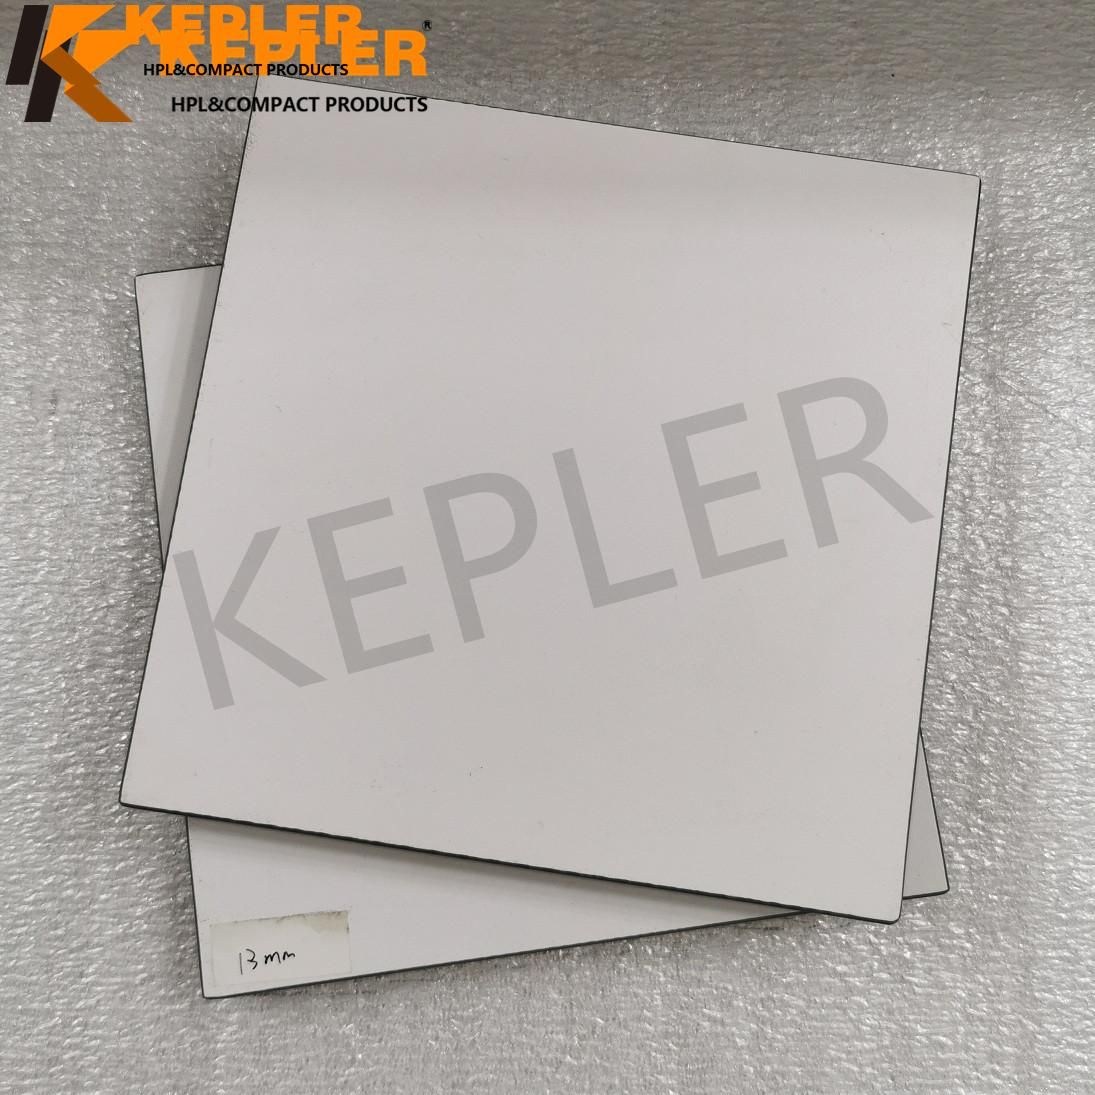 Kepler 13mm White Color HPL Compact Laminate Board